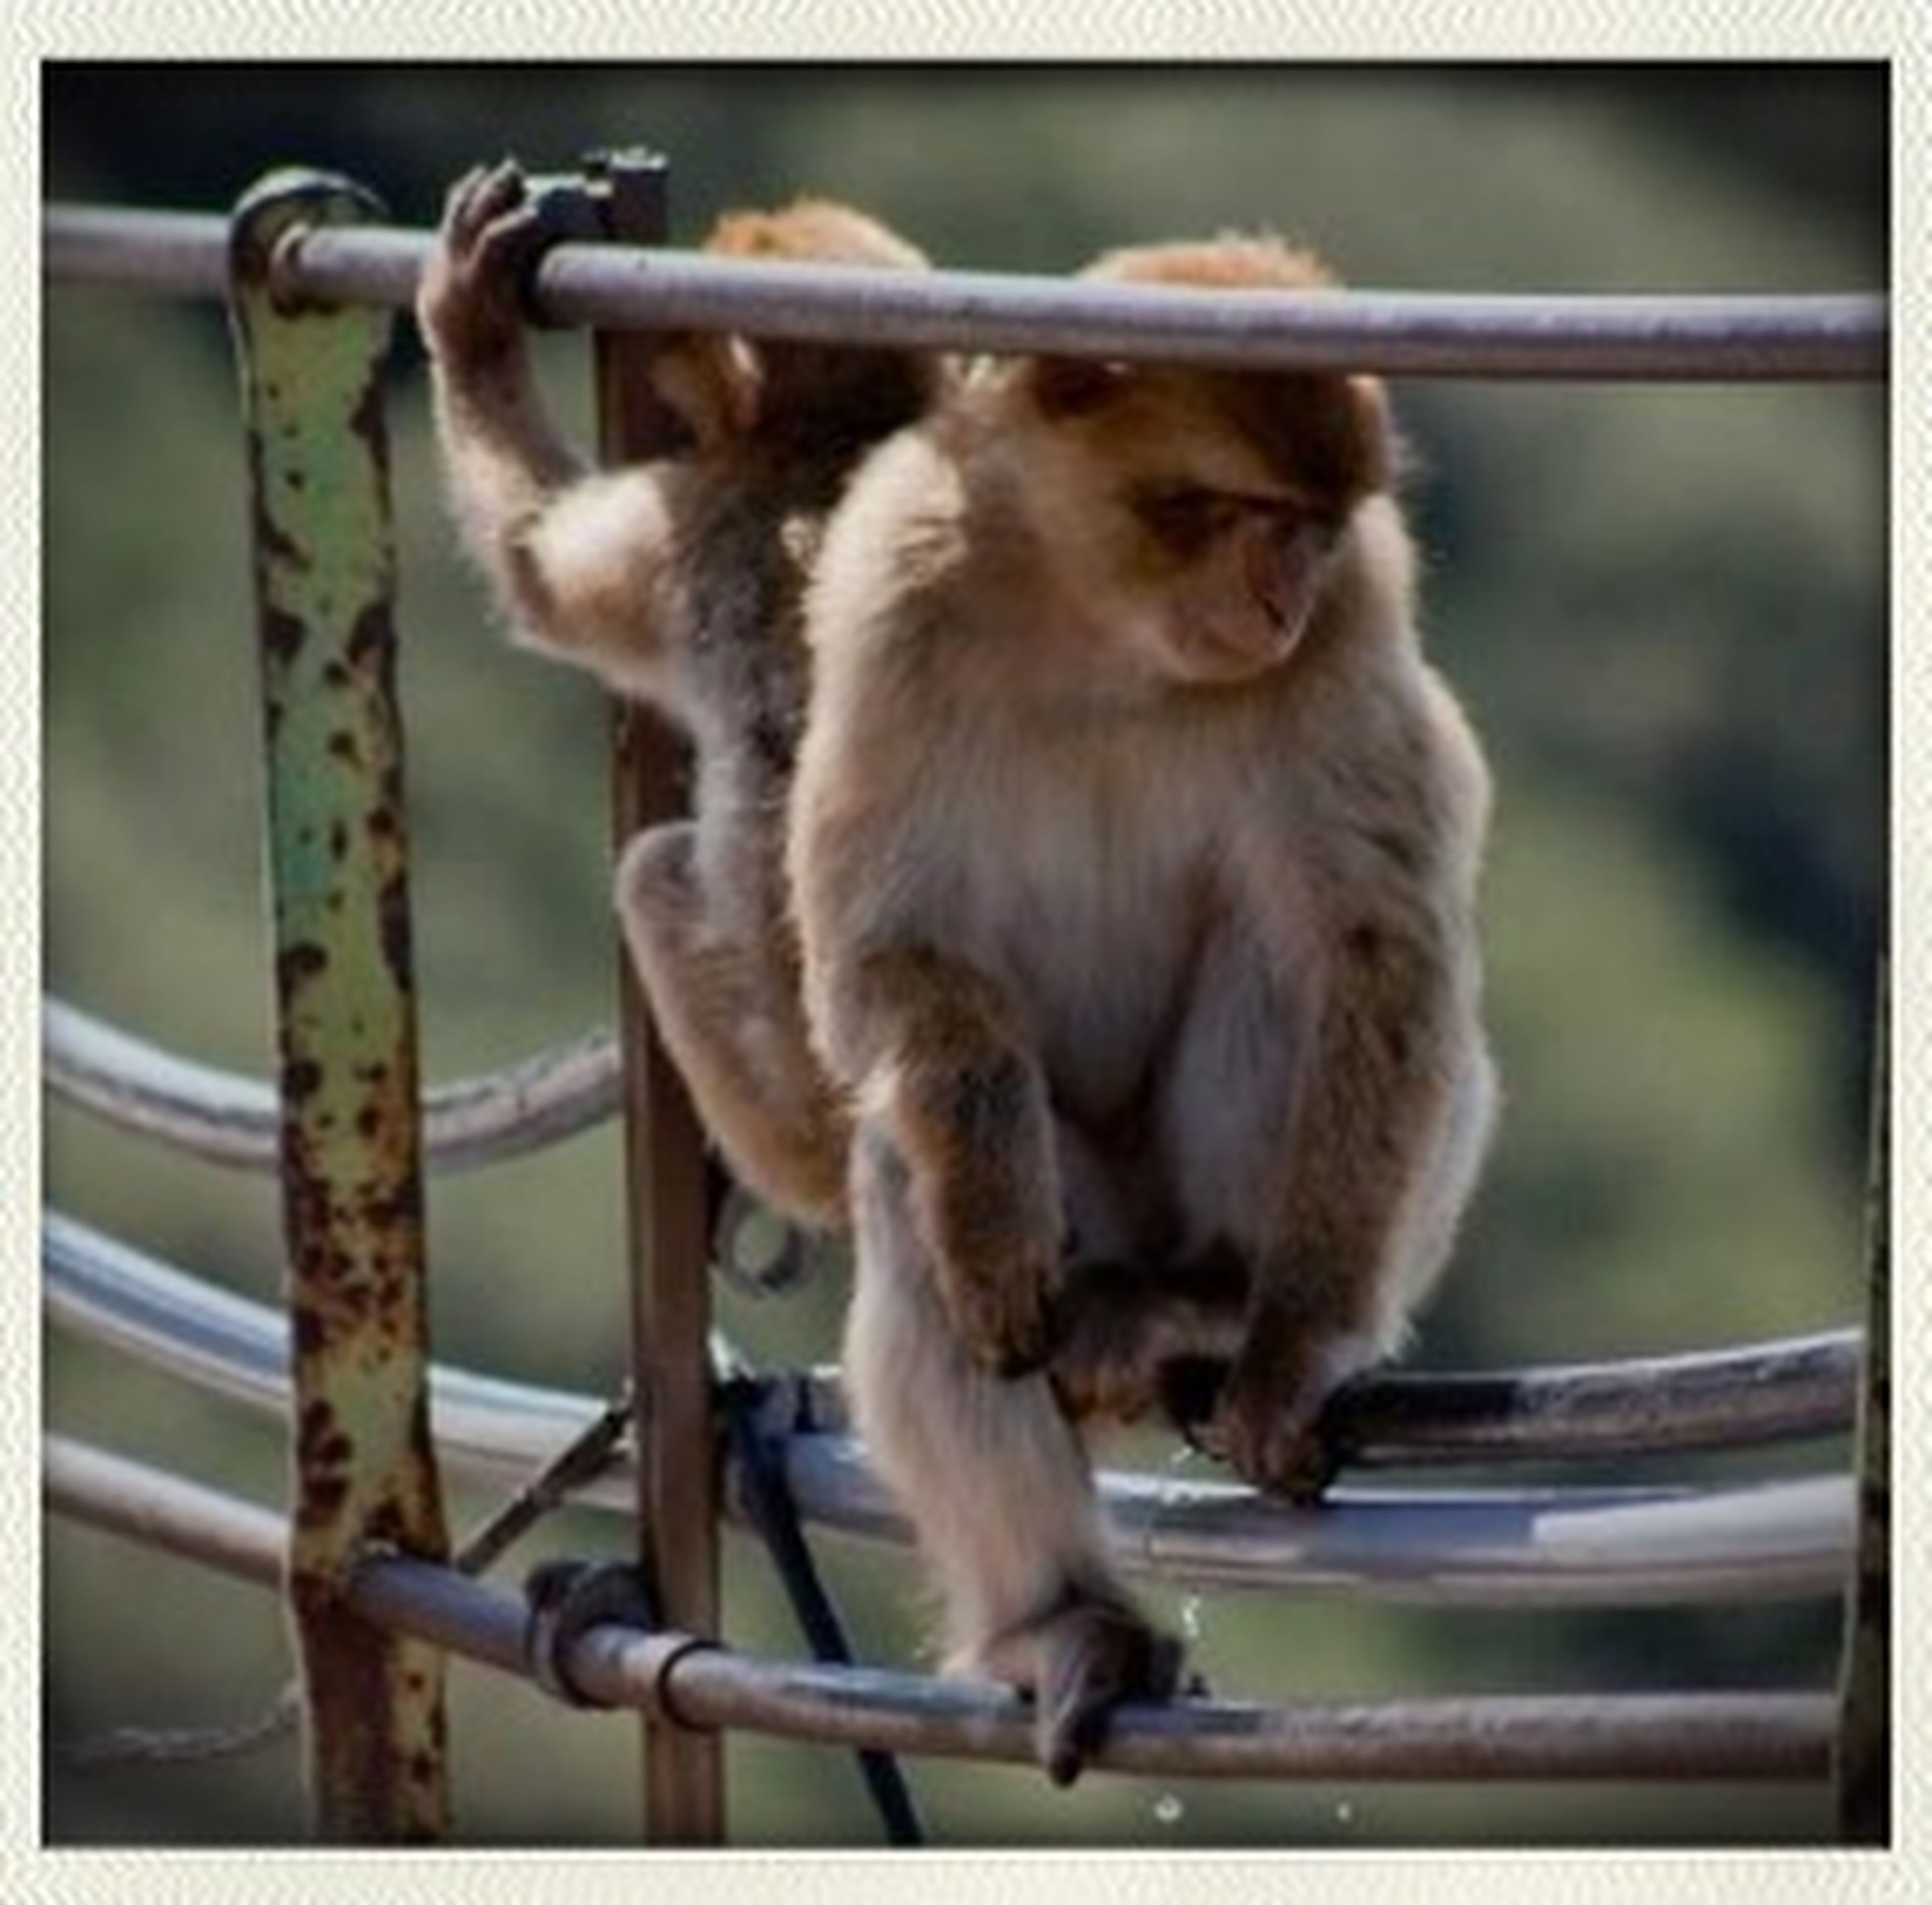 animal themes, wildlife, one animal, mammal, animals in the wild, monkey, focus on foreground, fence, animals in captivity, zoo, full length, close-up, railing, metal, sitting, day, wood - material, outdoors, primate, squirrel